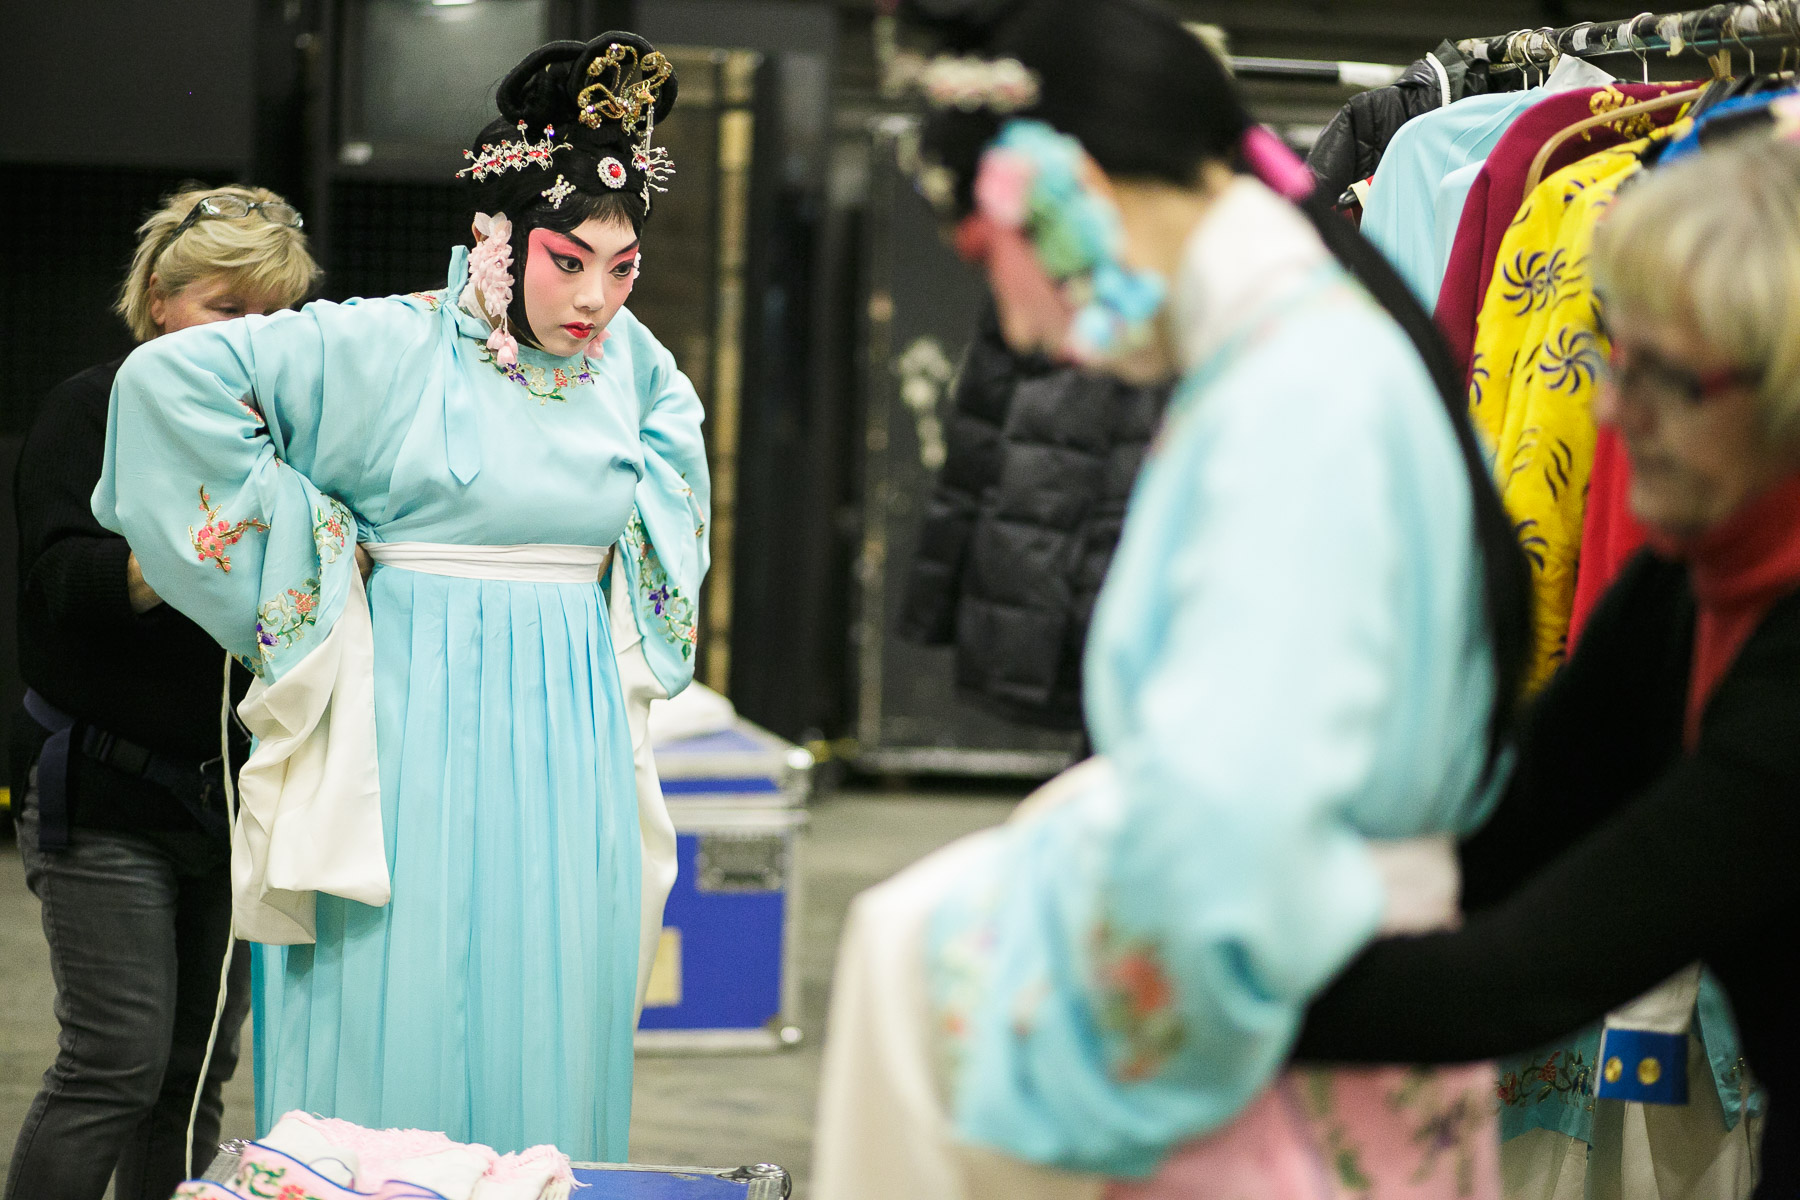 Actresses put on their costumes before the China National Peking Opera Company performance of the Monkey King in Cankarjev dom Culture and Congress Center in Ljubljana, Slovenia, Dec. 31, 2015.